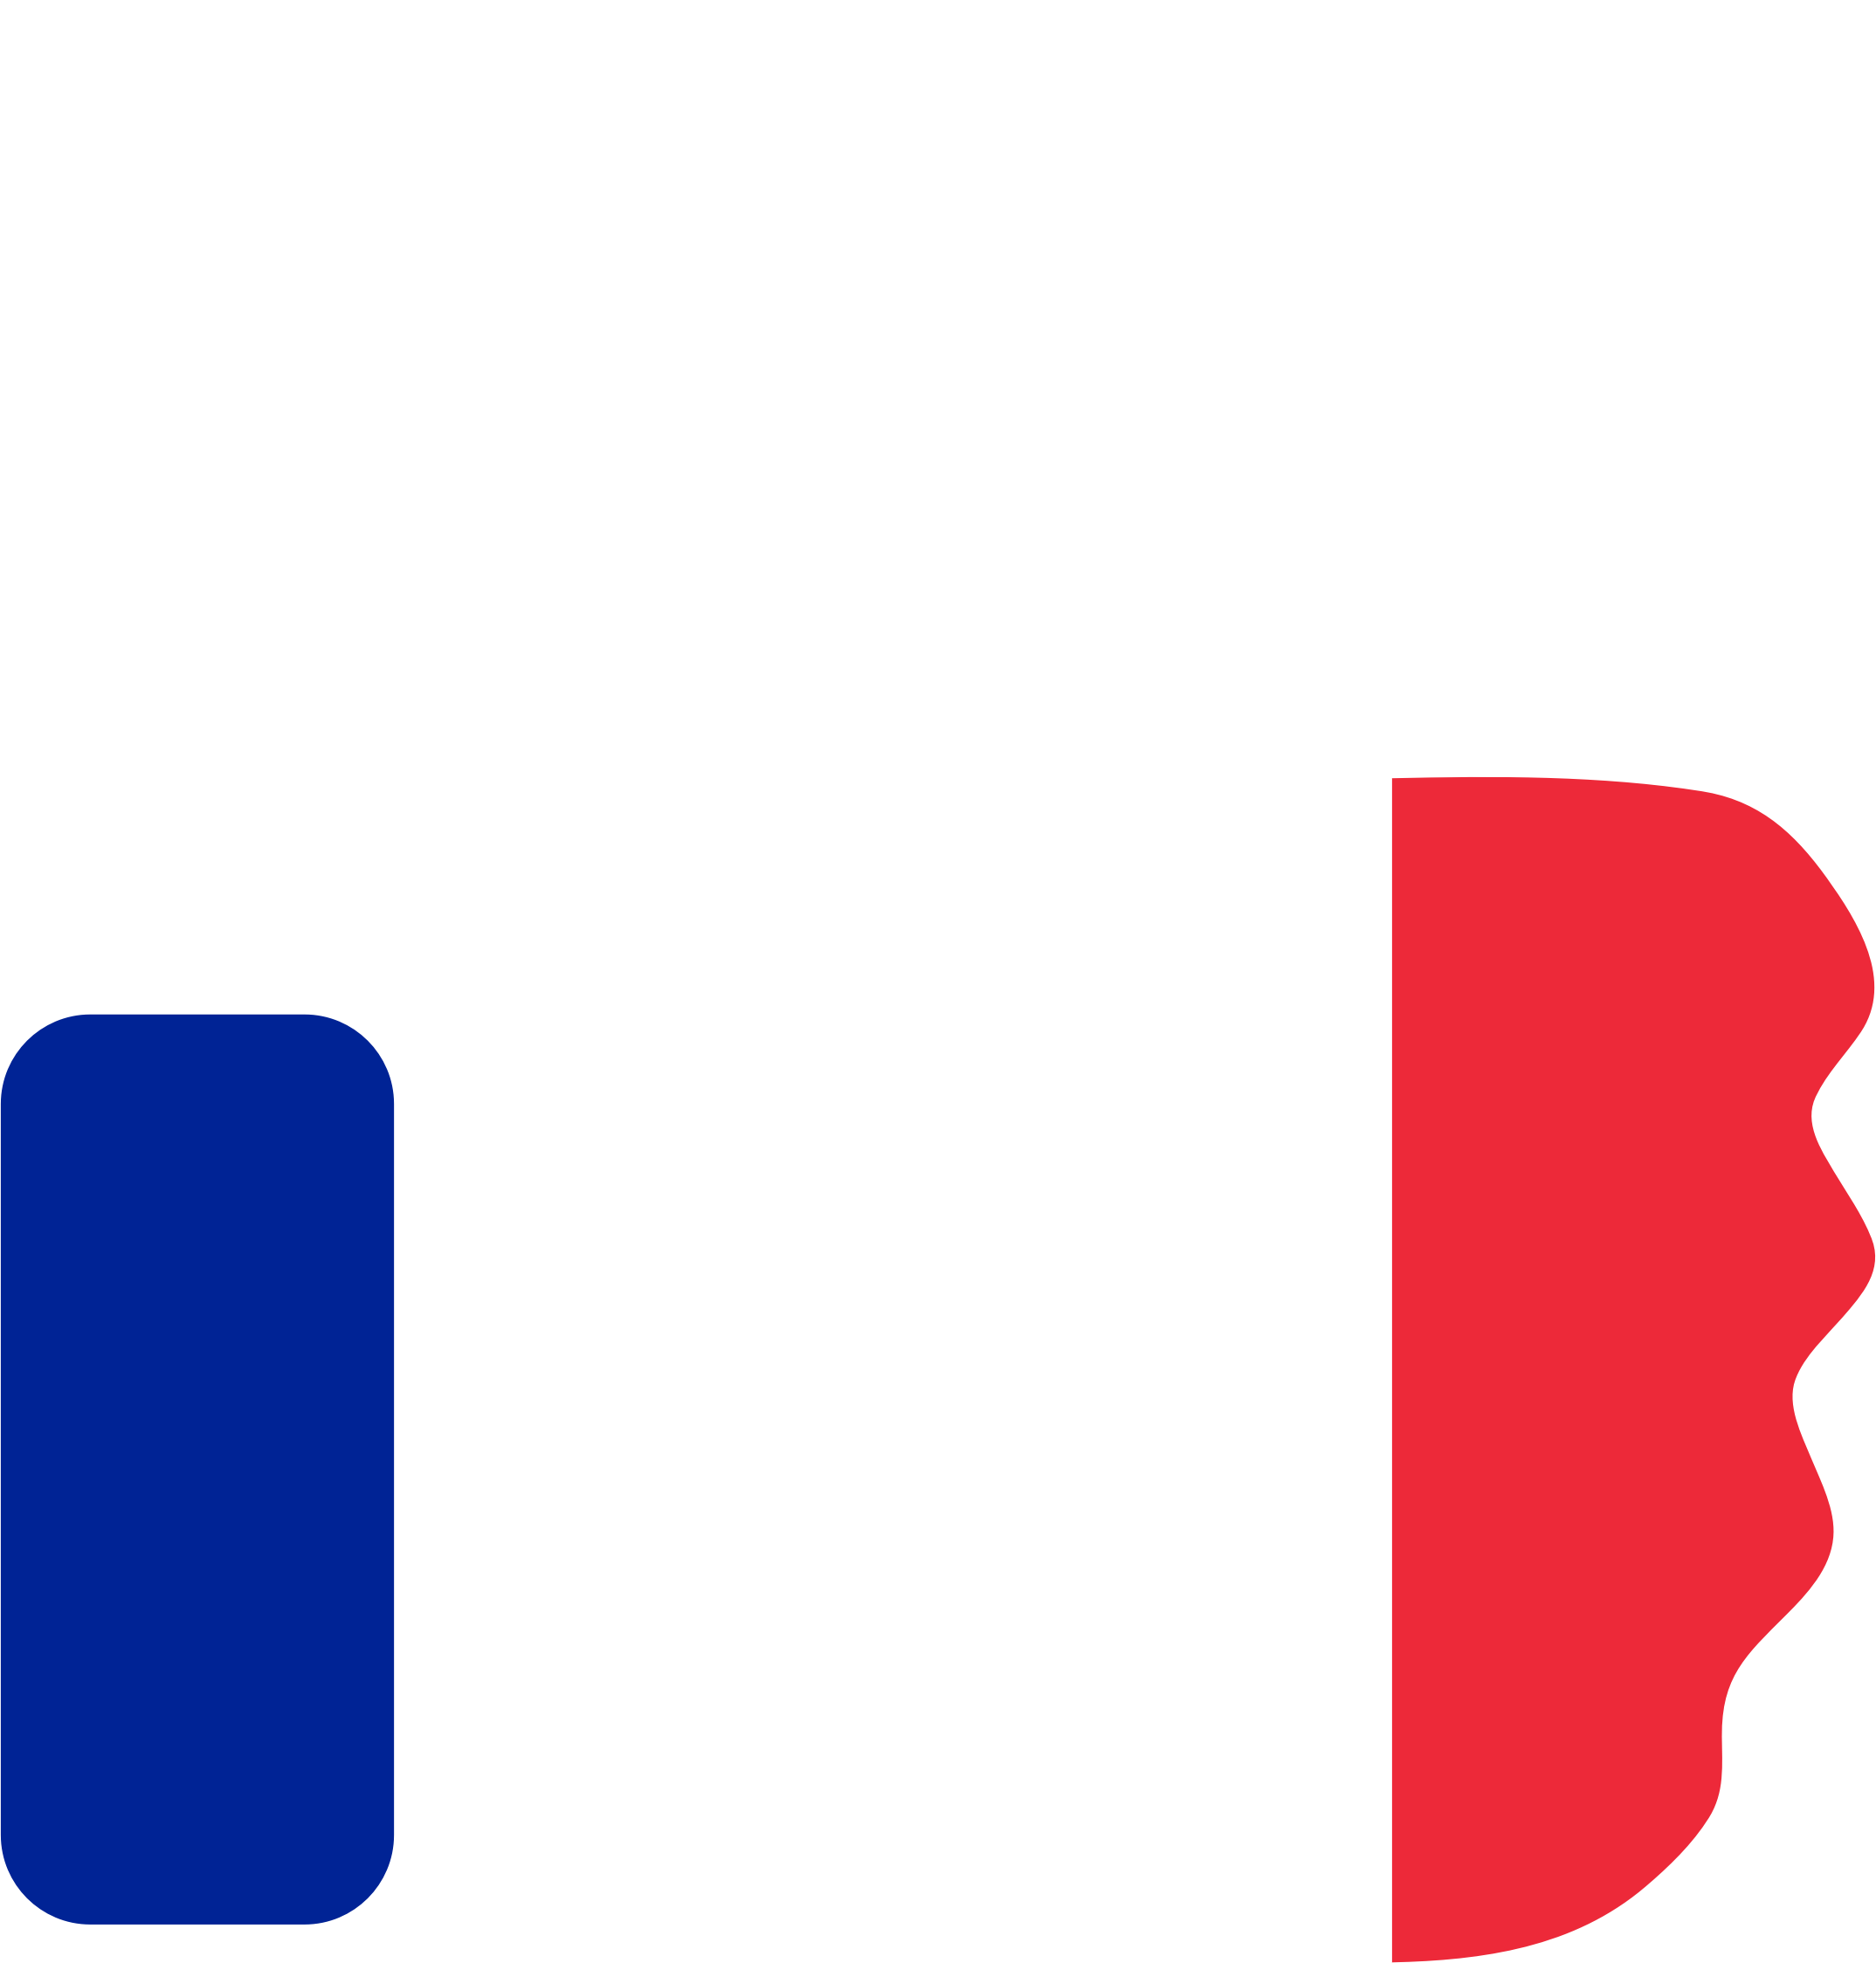 France clipart red. Thumbs up big image